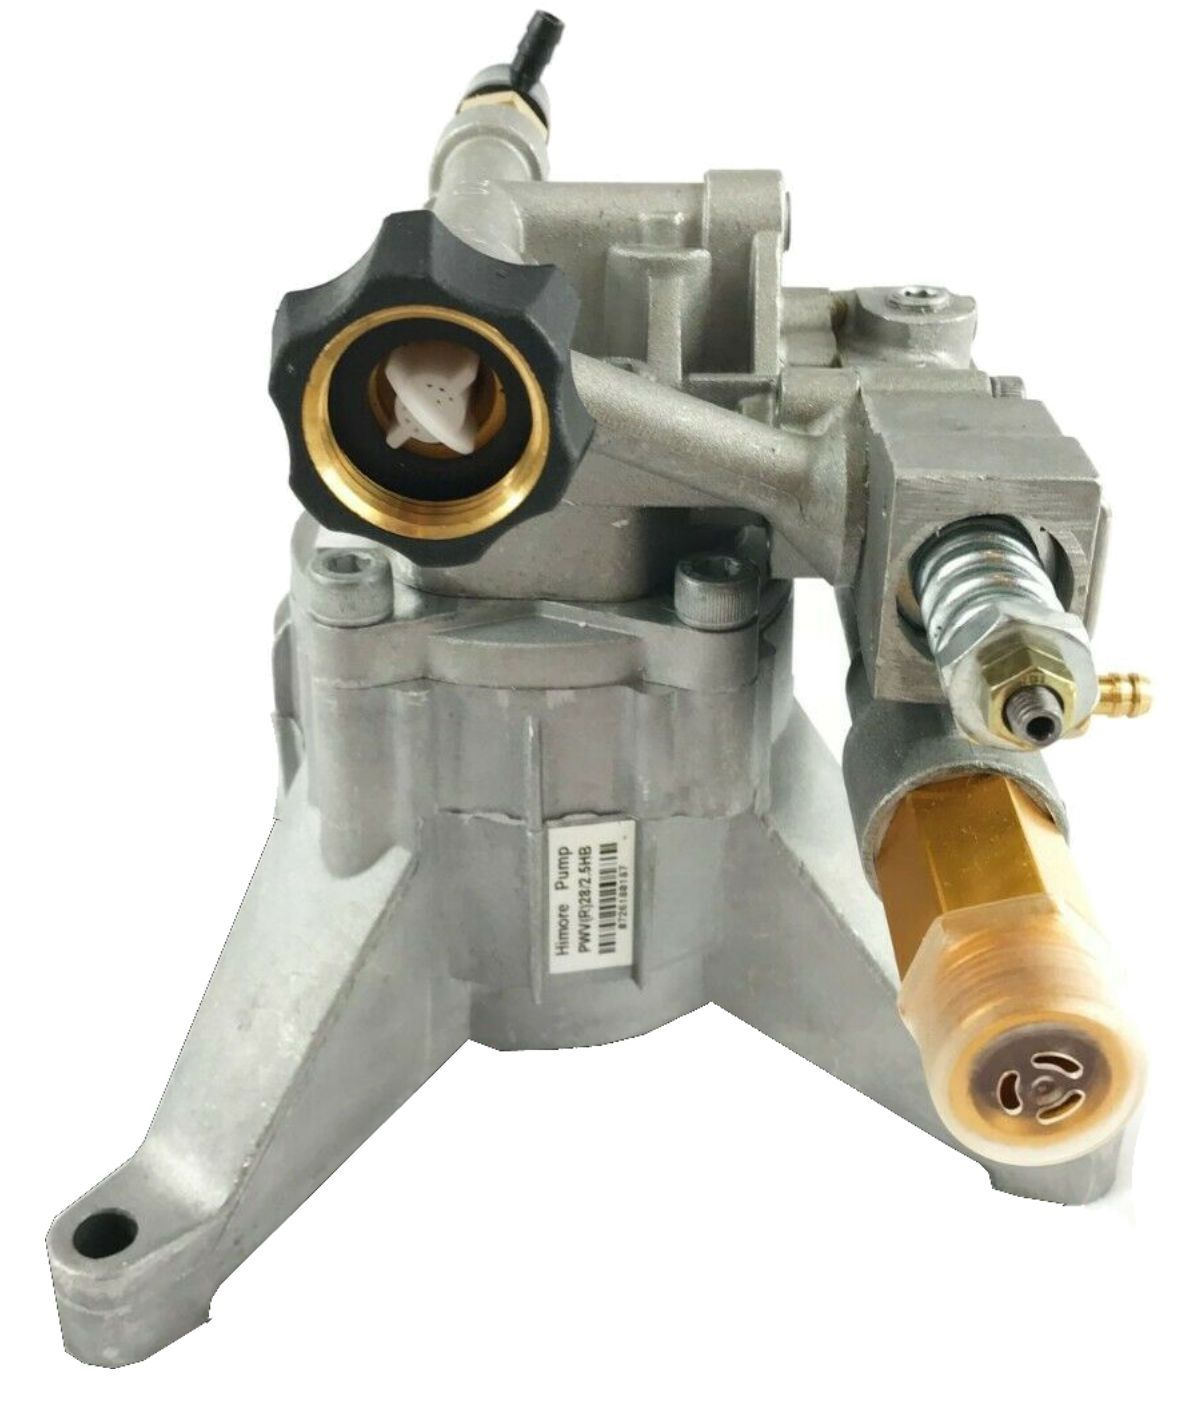 2700 PSI PRESSURE WASHER WATER PUMP Campbell Hausfeld PW2050V2LE - AE-Power